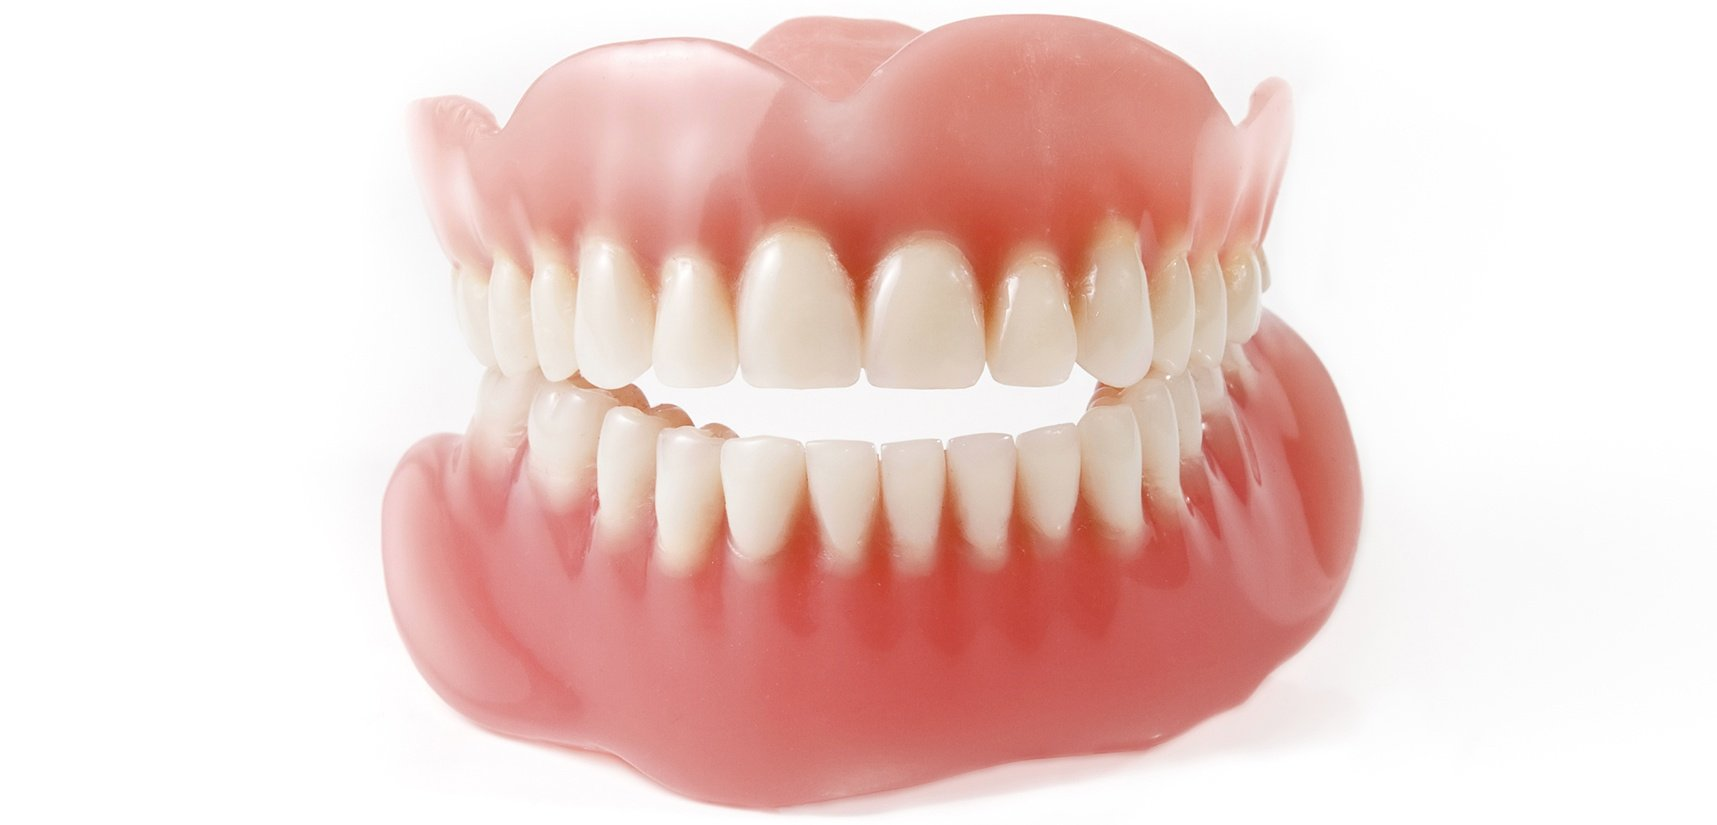 TIPS FOR A SUCCESSFUL DENTURE TEETH TRY IN